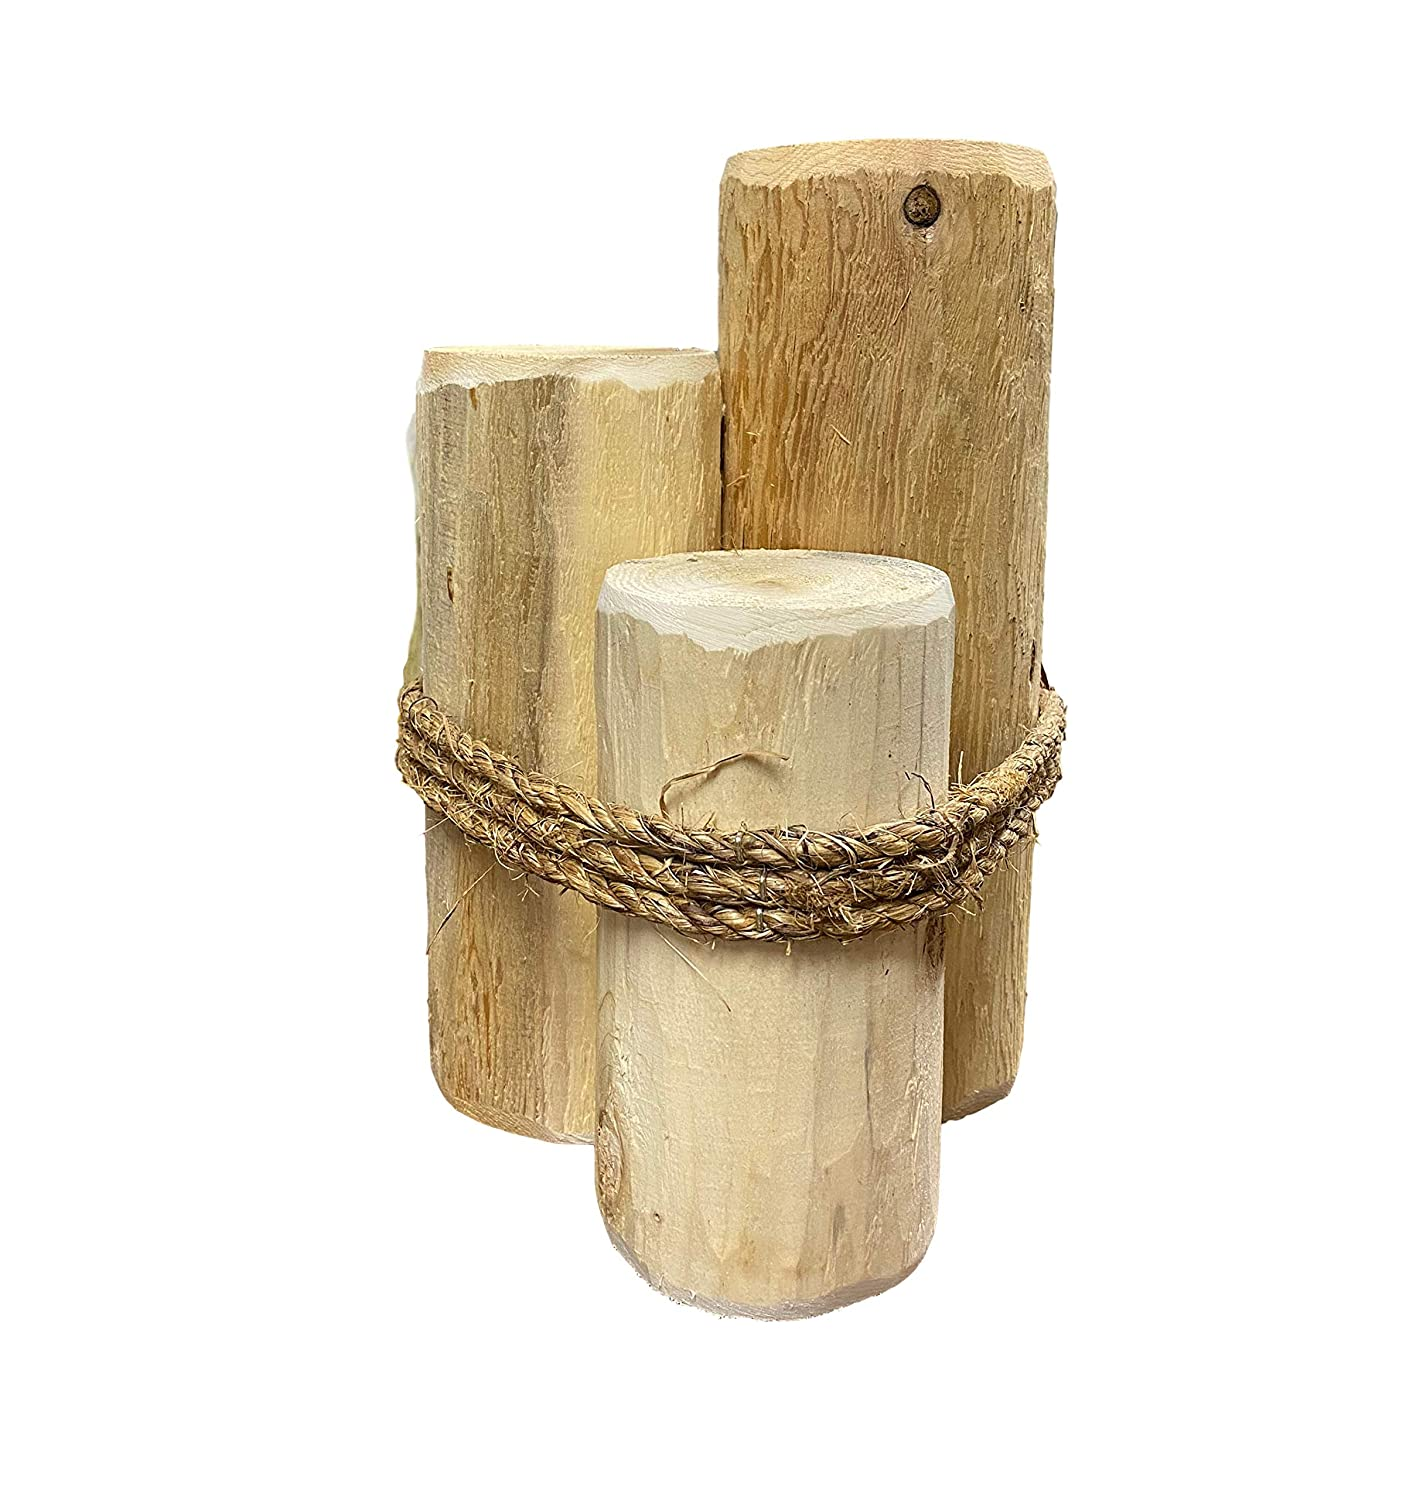 Cedar Wood Piling Pier Post 15 Tall Coastal Nautical Decor